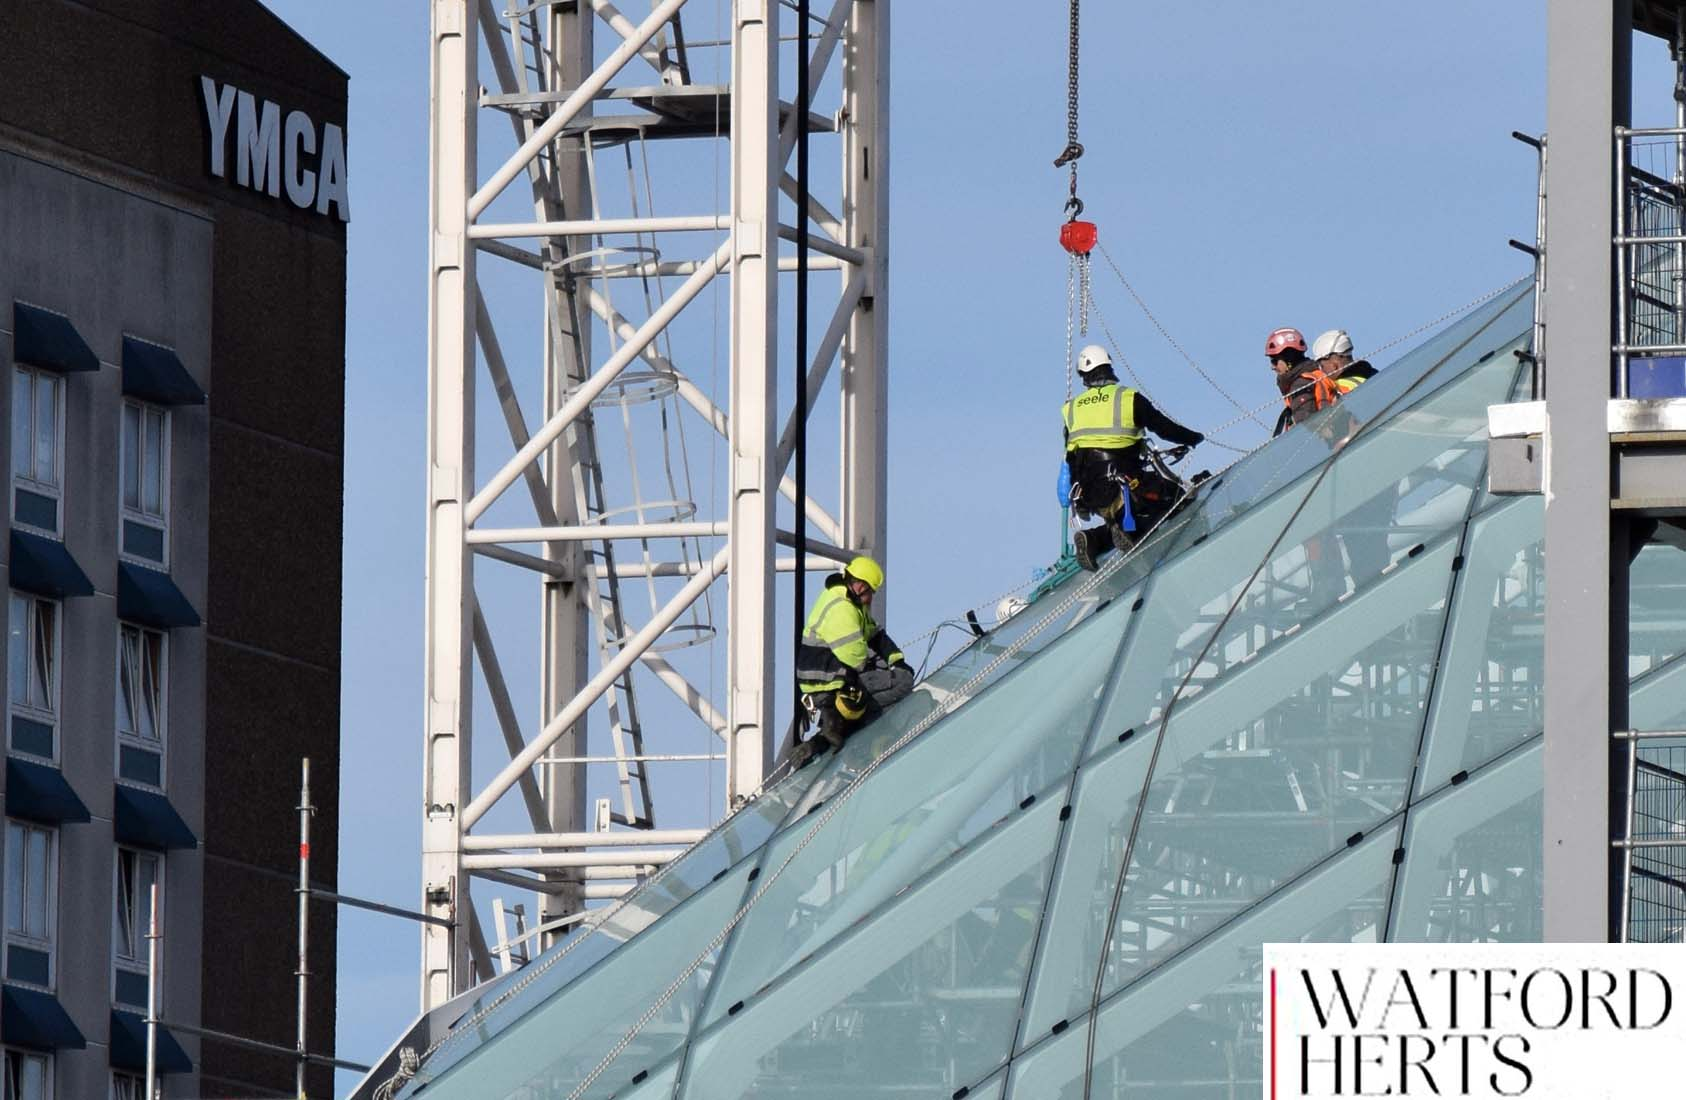 Workmen on top of Glass Roof of Watford Shopping Centre Construction